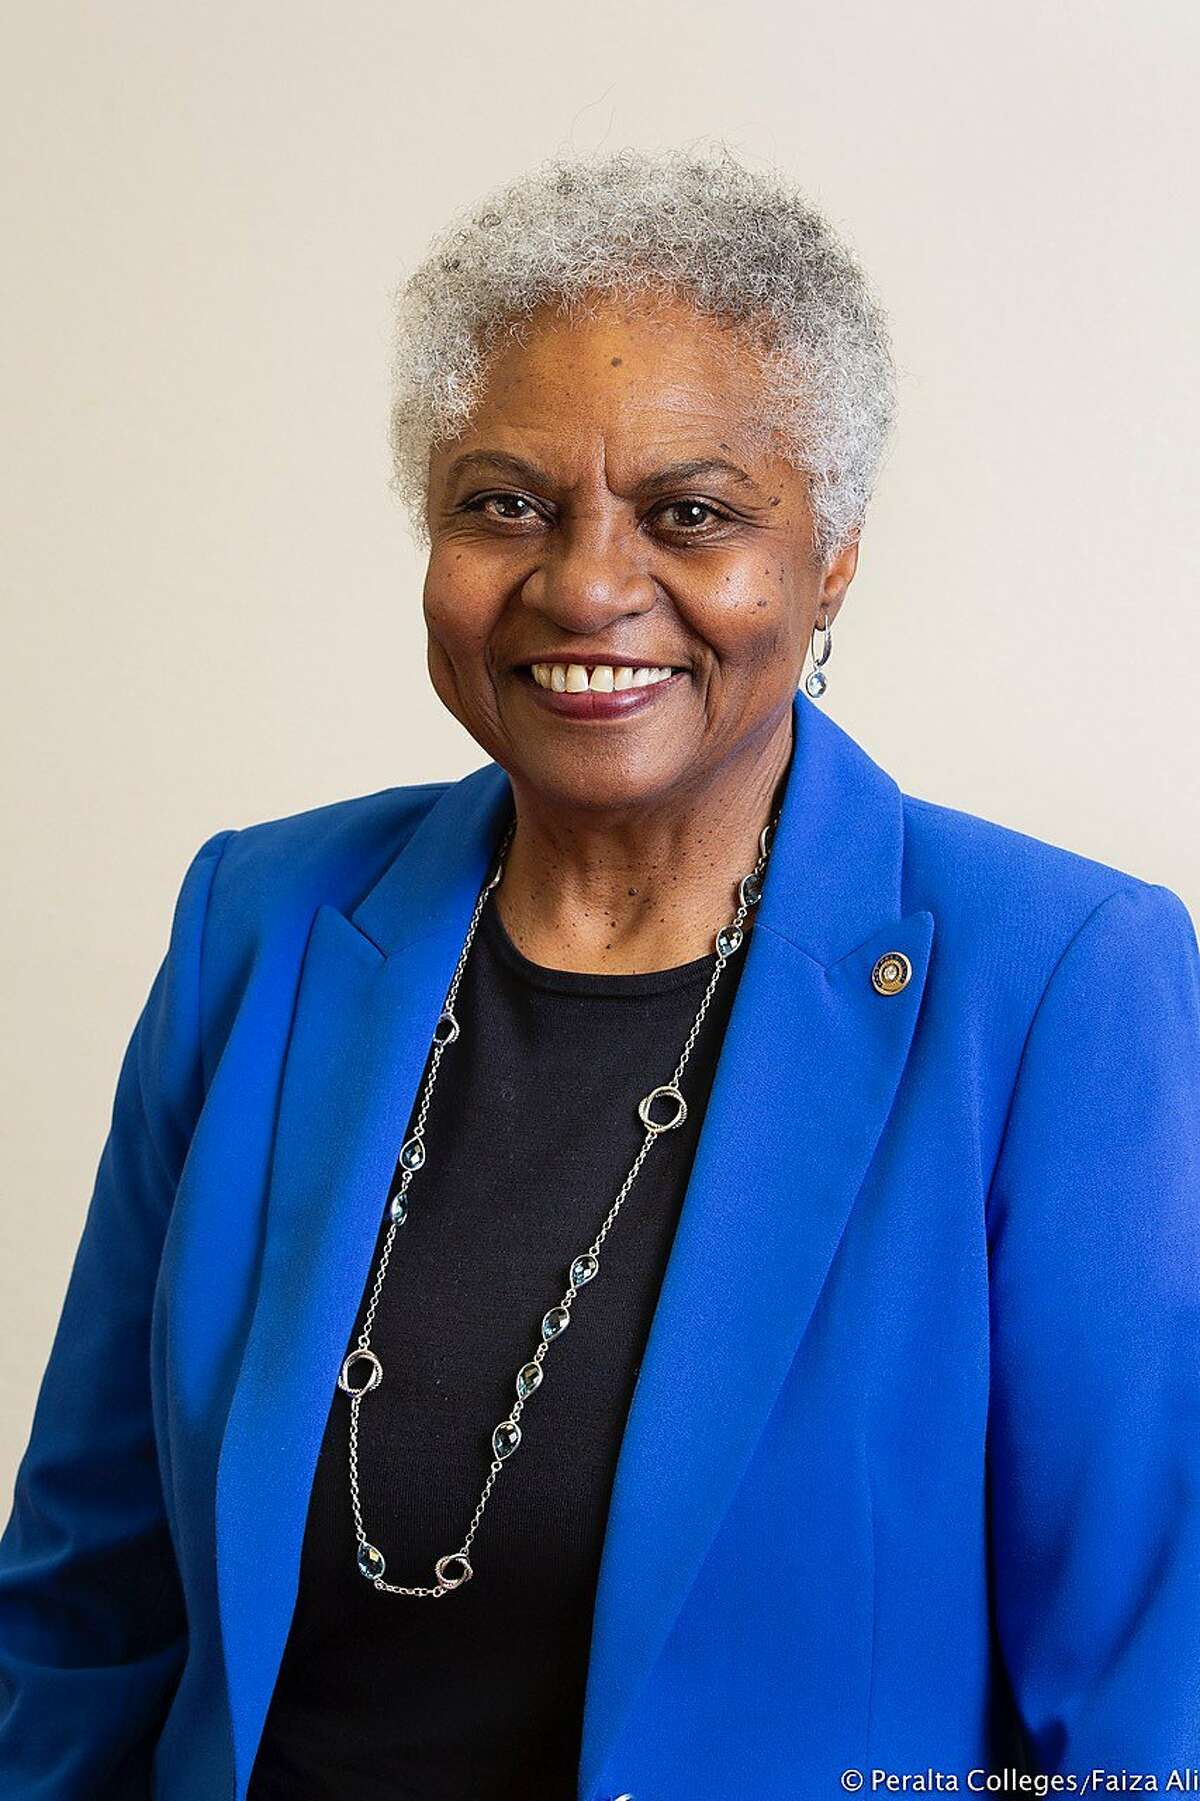 The Peralta Community College District's acting Chancellor Frances White, says she's committed to helping the district emerge from a financial crisis that could lead to insolvency and fraud.